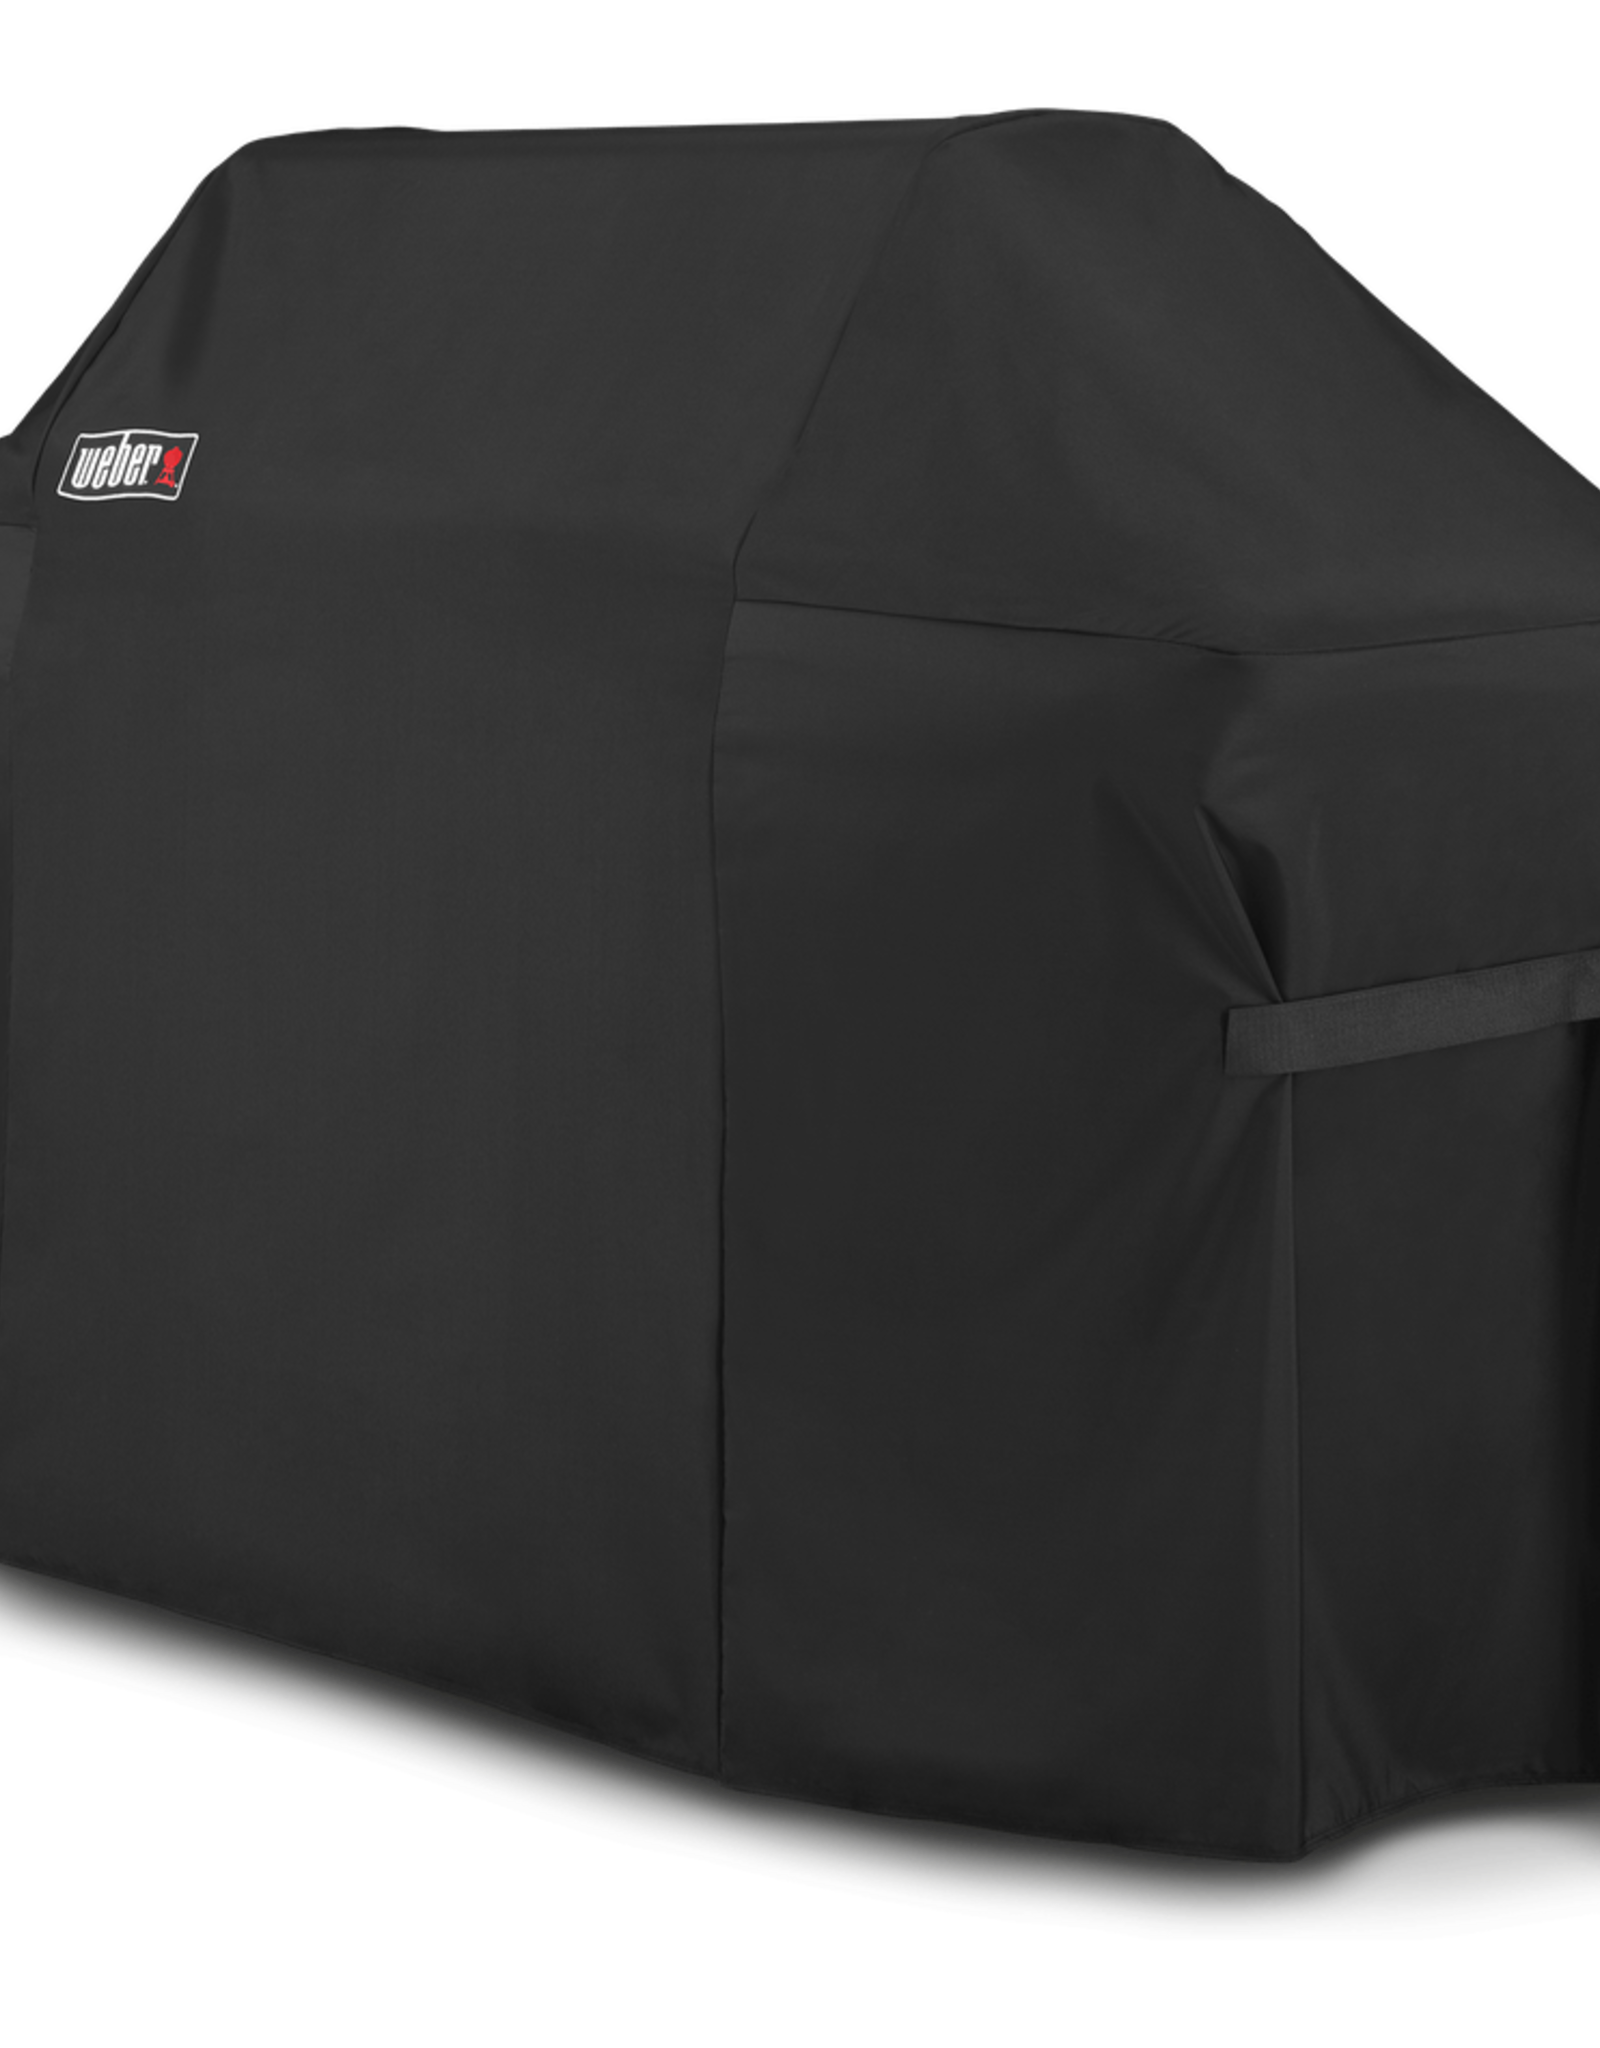 Weber Premium Grill Cover - Fits Summit 600 series